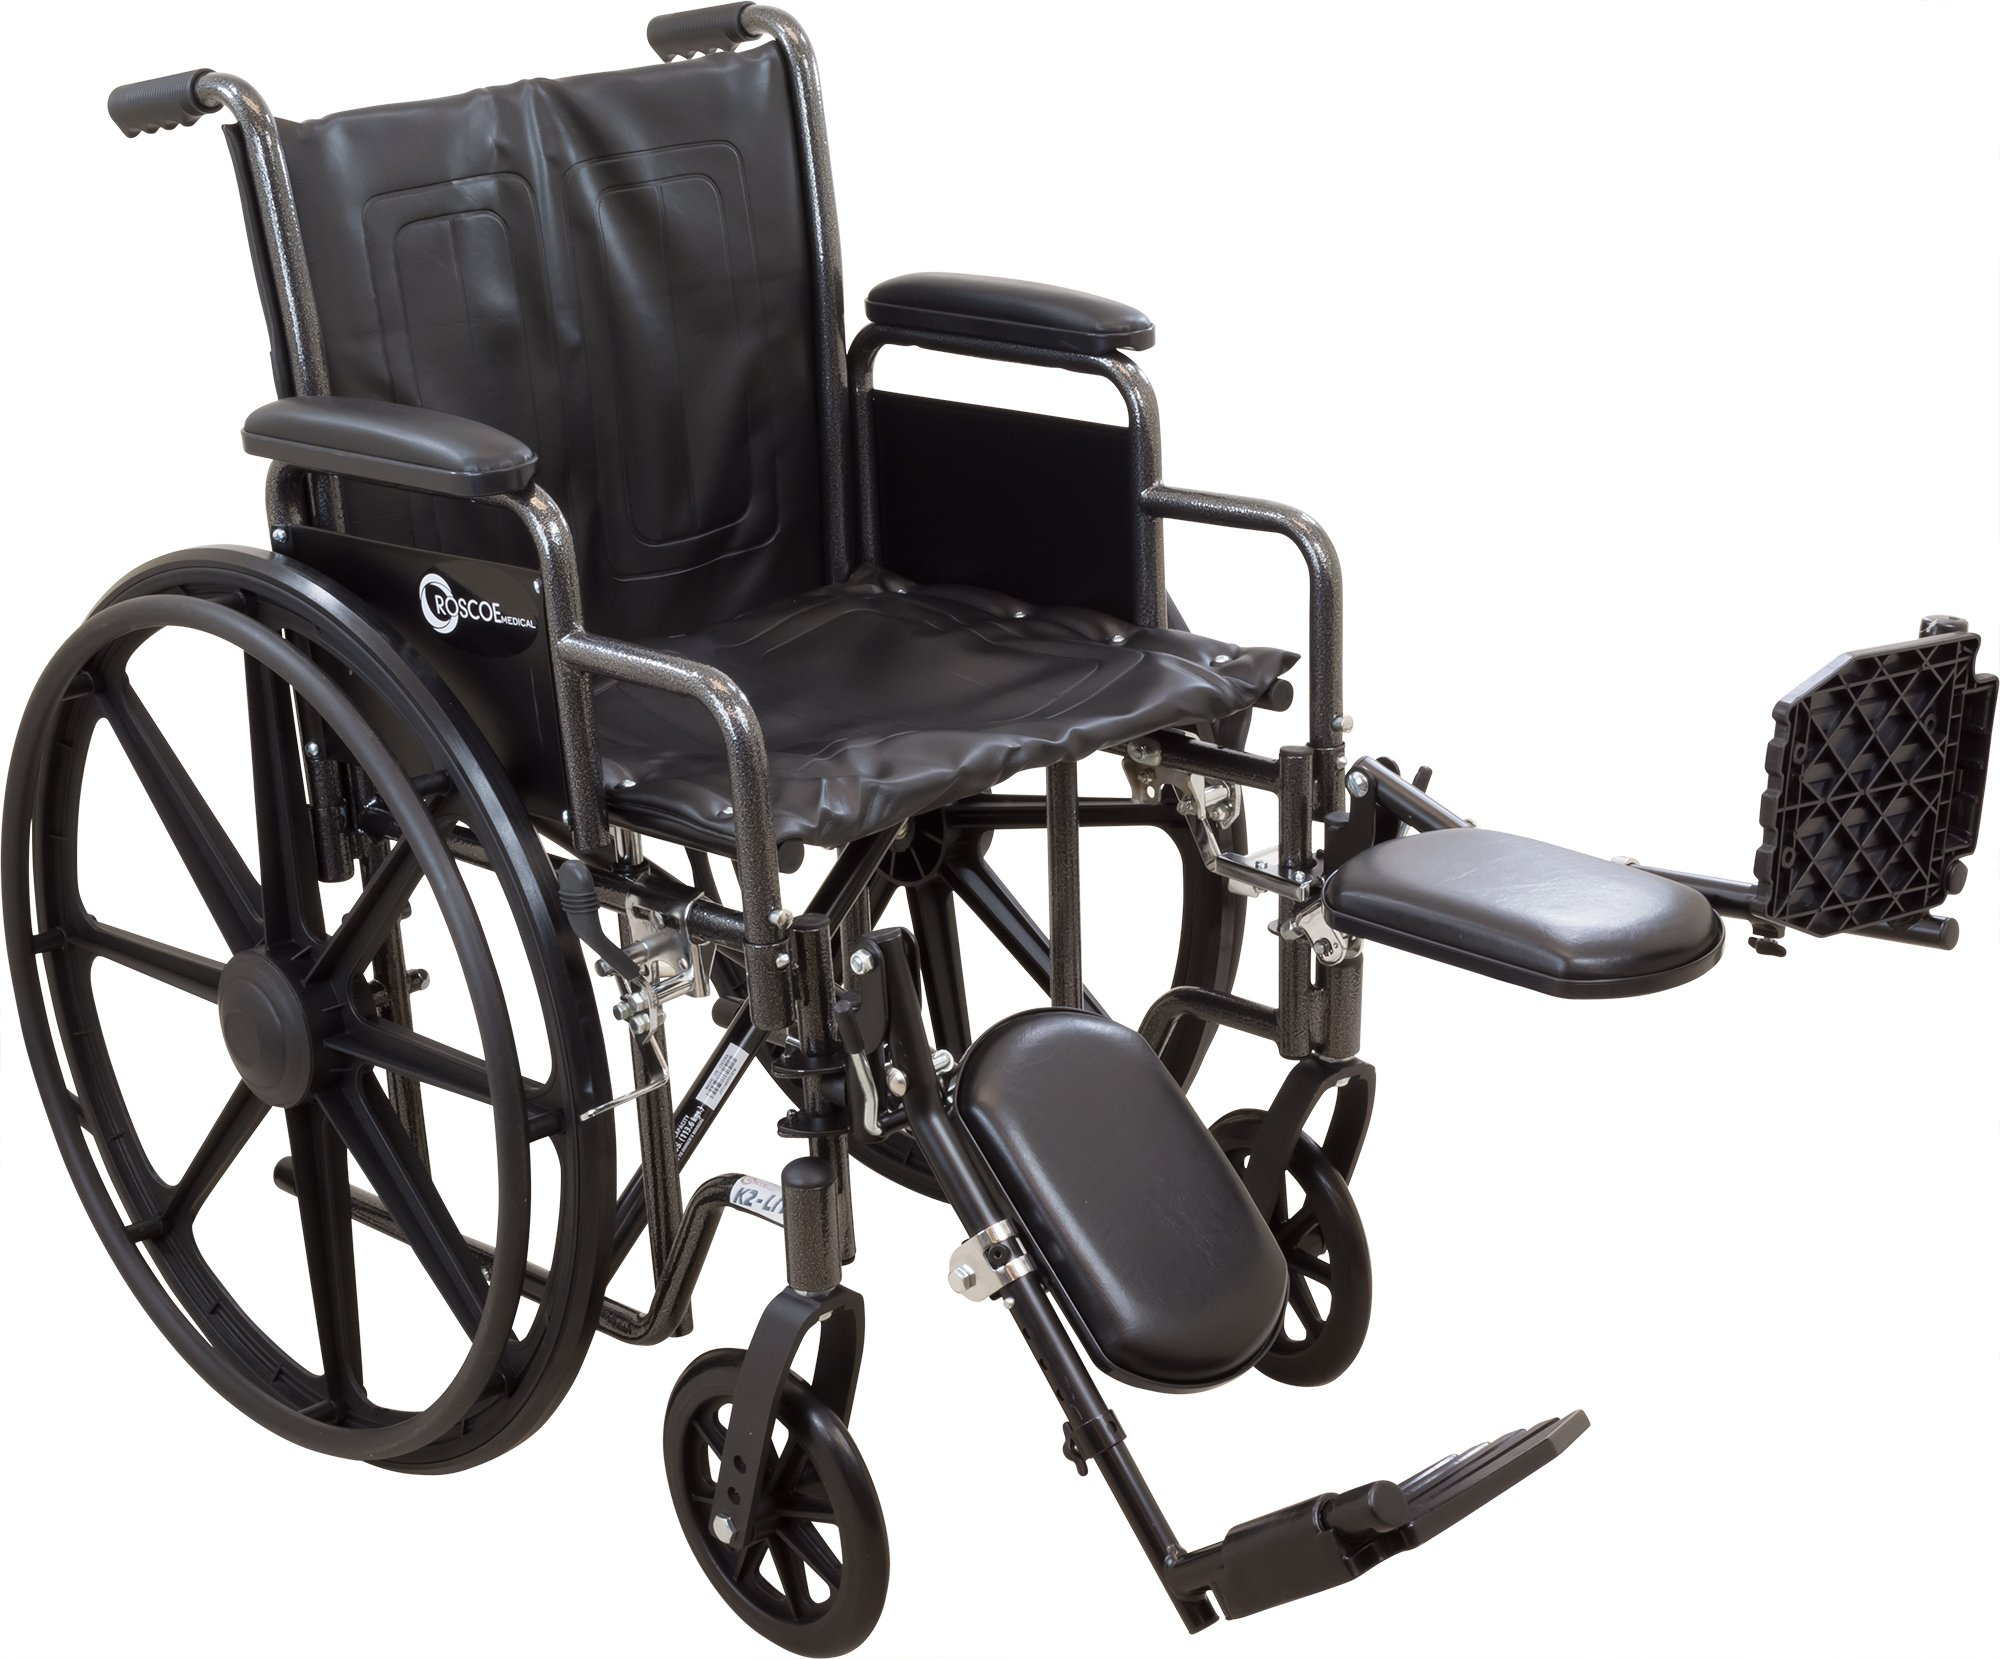 ProBasics Comfort Standard Wheelchair - Height Adjustable Seat - Flip Back Desk Arms - 300 Pound Weight Wapacity - Black - Elevating Leg Rest - 20'' x 16'' Seat by Roscoe Medical